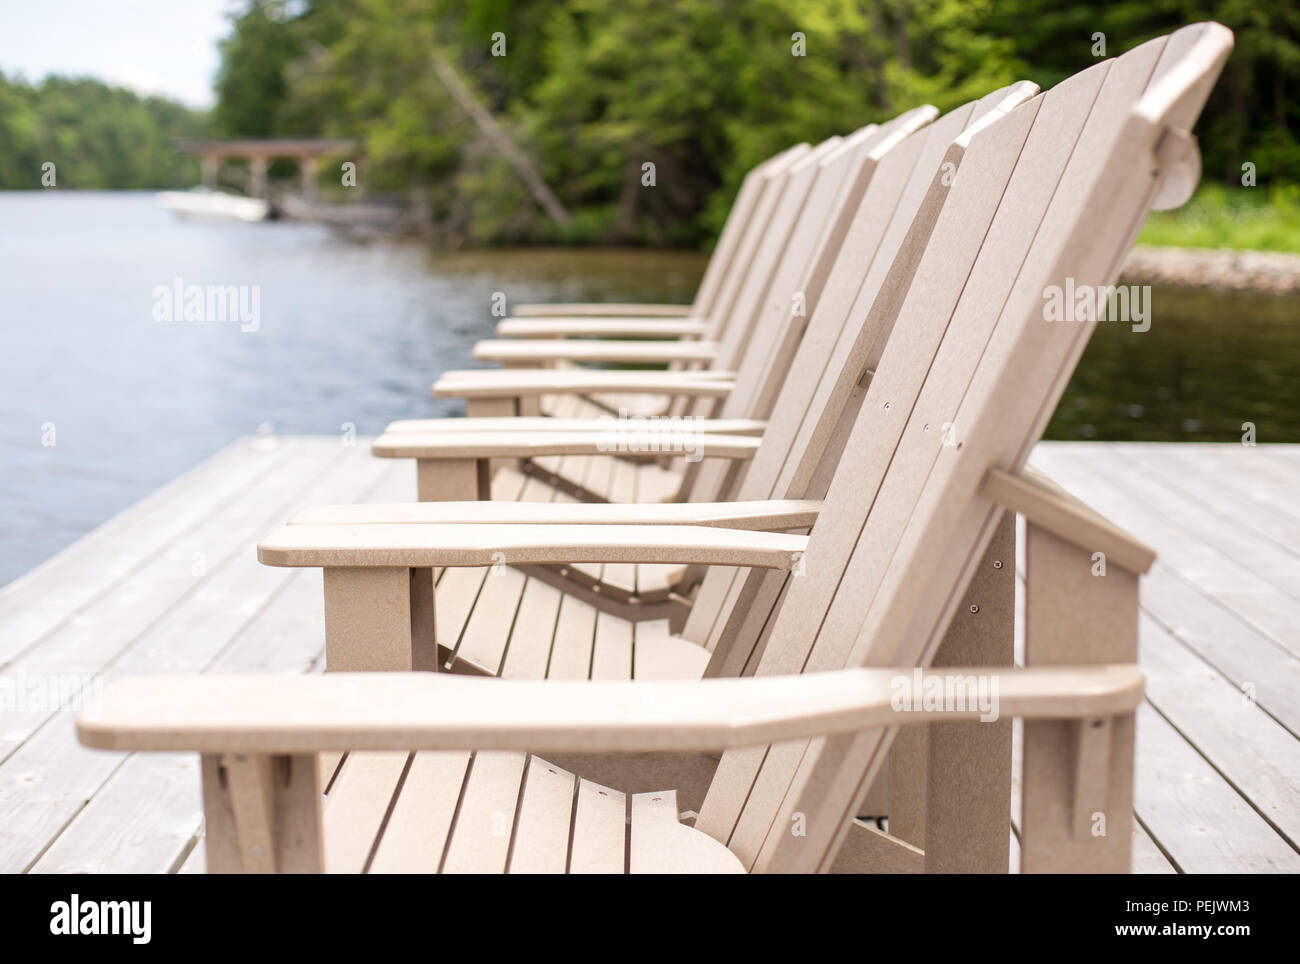 Side view of Muskoka chairs on a dock. - Stock Image